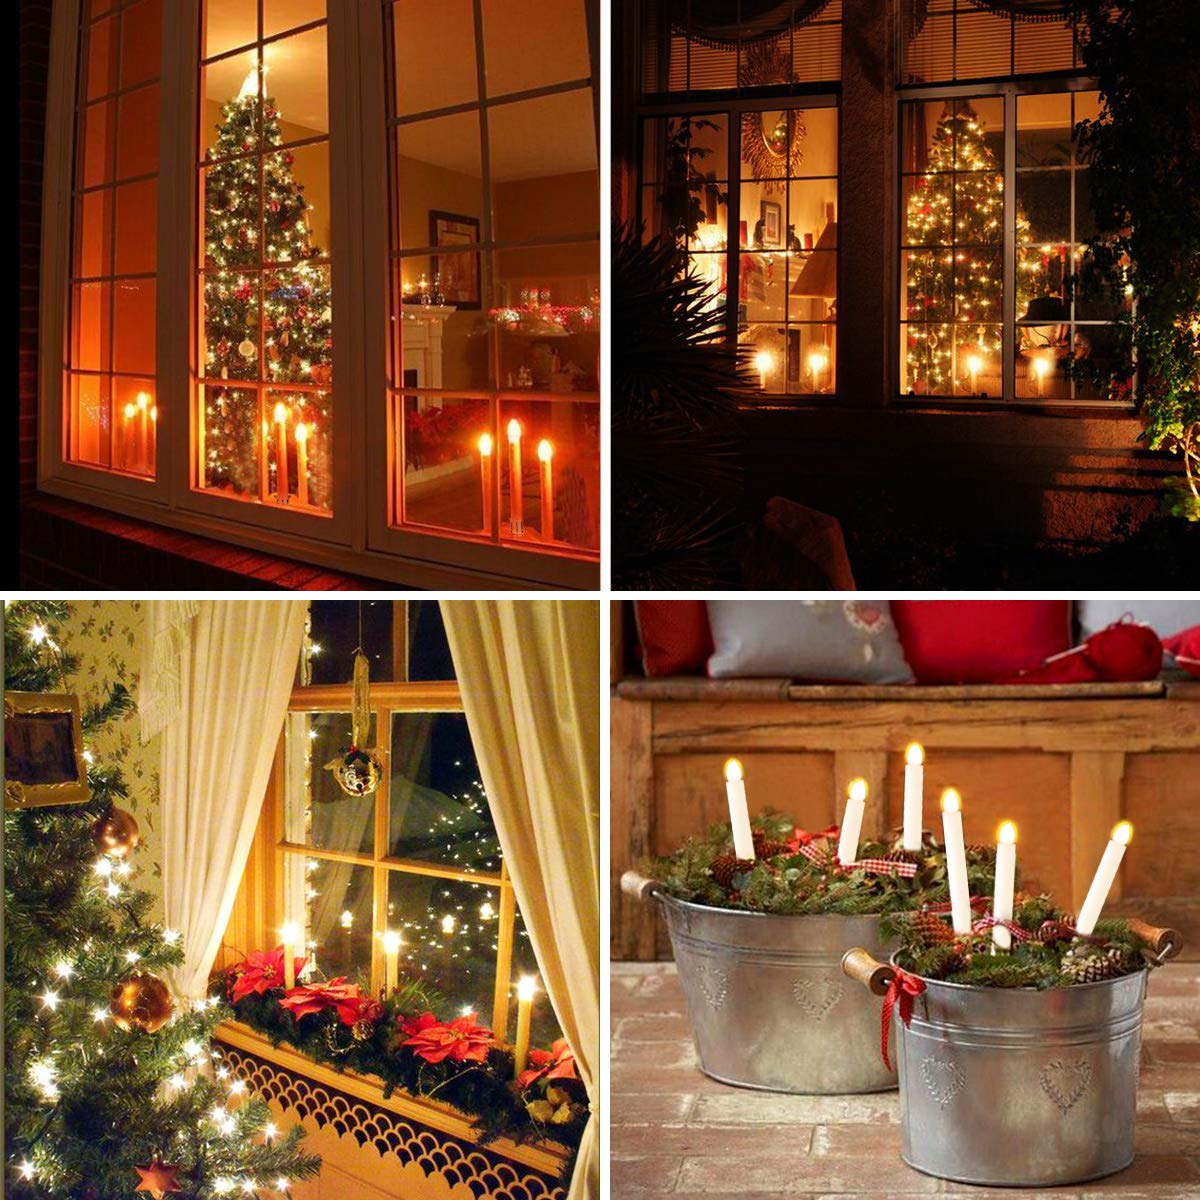 Window Candles Lights, YUNLIGHTS 12 Pack Battery Powered Window Candles Flameless Taper Candles with Remote Control, Timer, Removable Gold Holders, Suction Cups, Warm White Hanukkah Candles by YUNLIGHTS (Image #5)